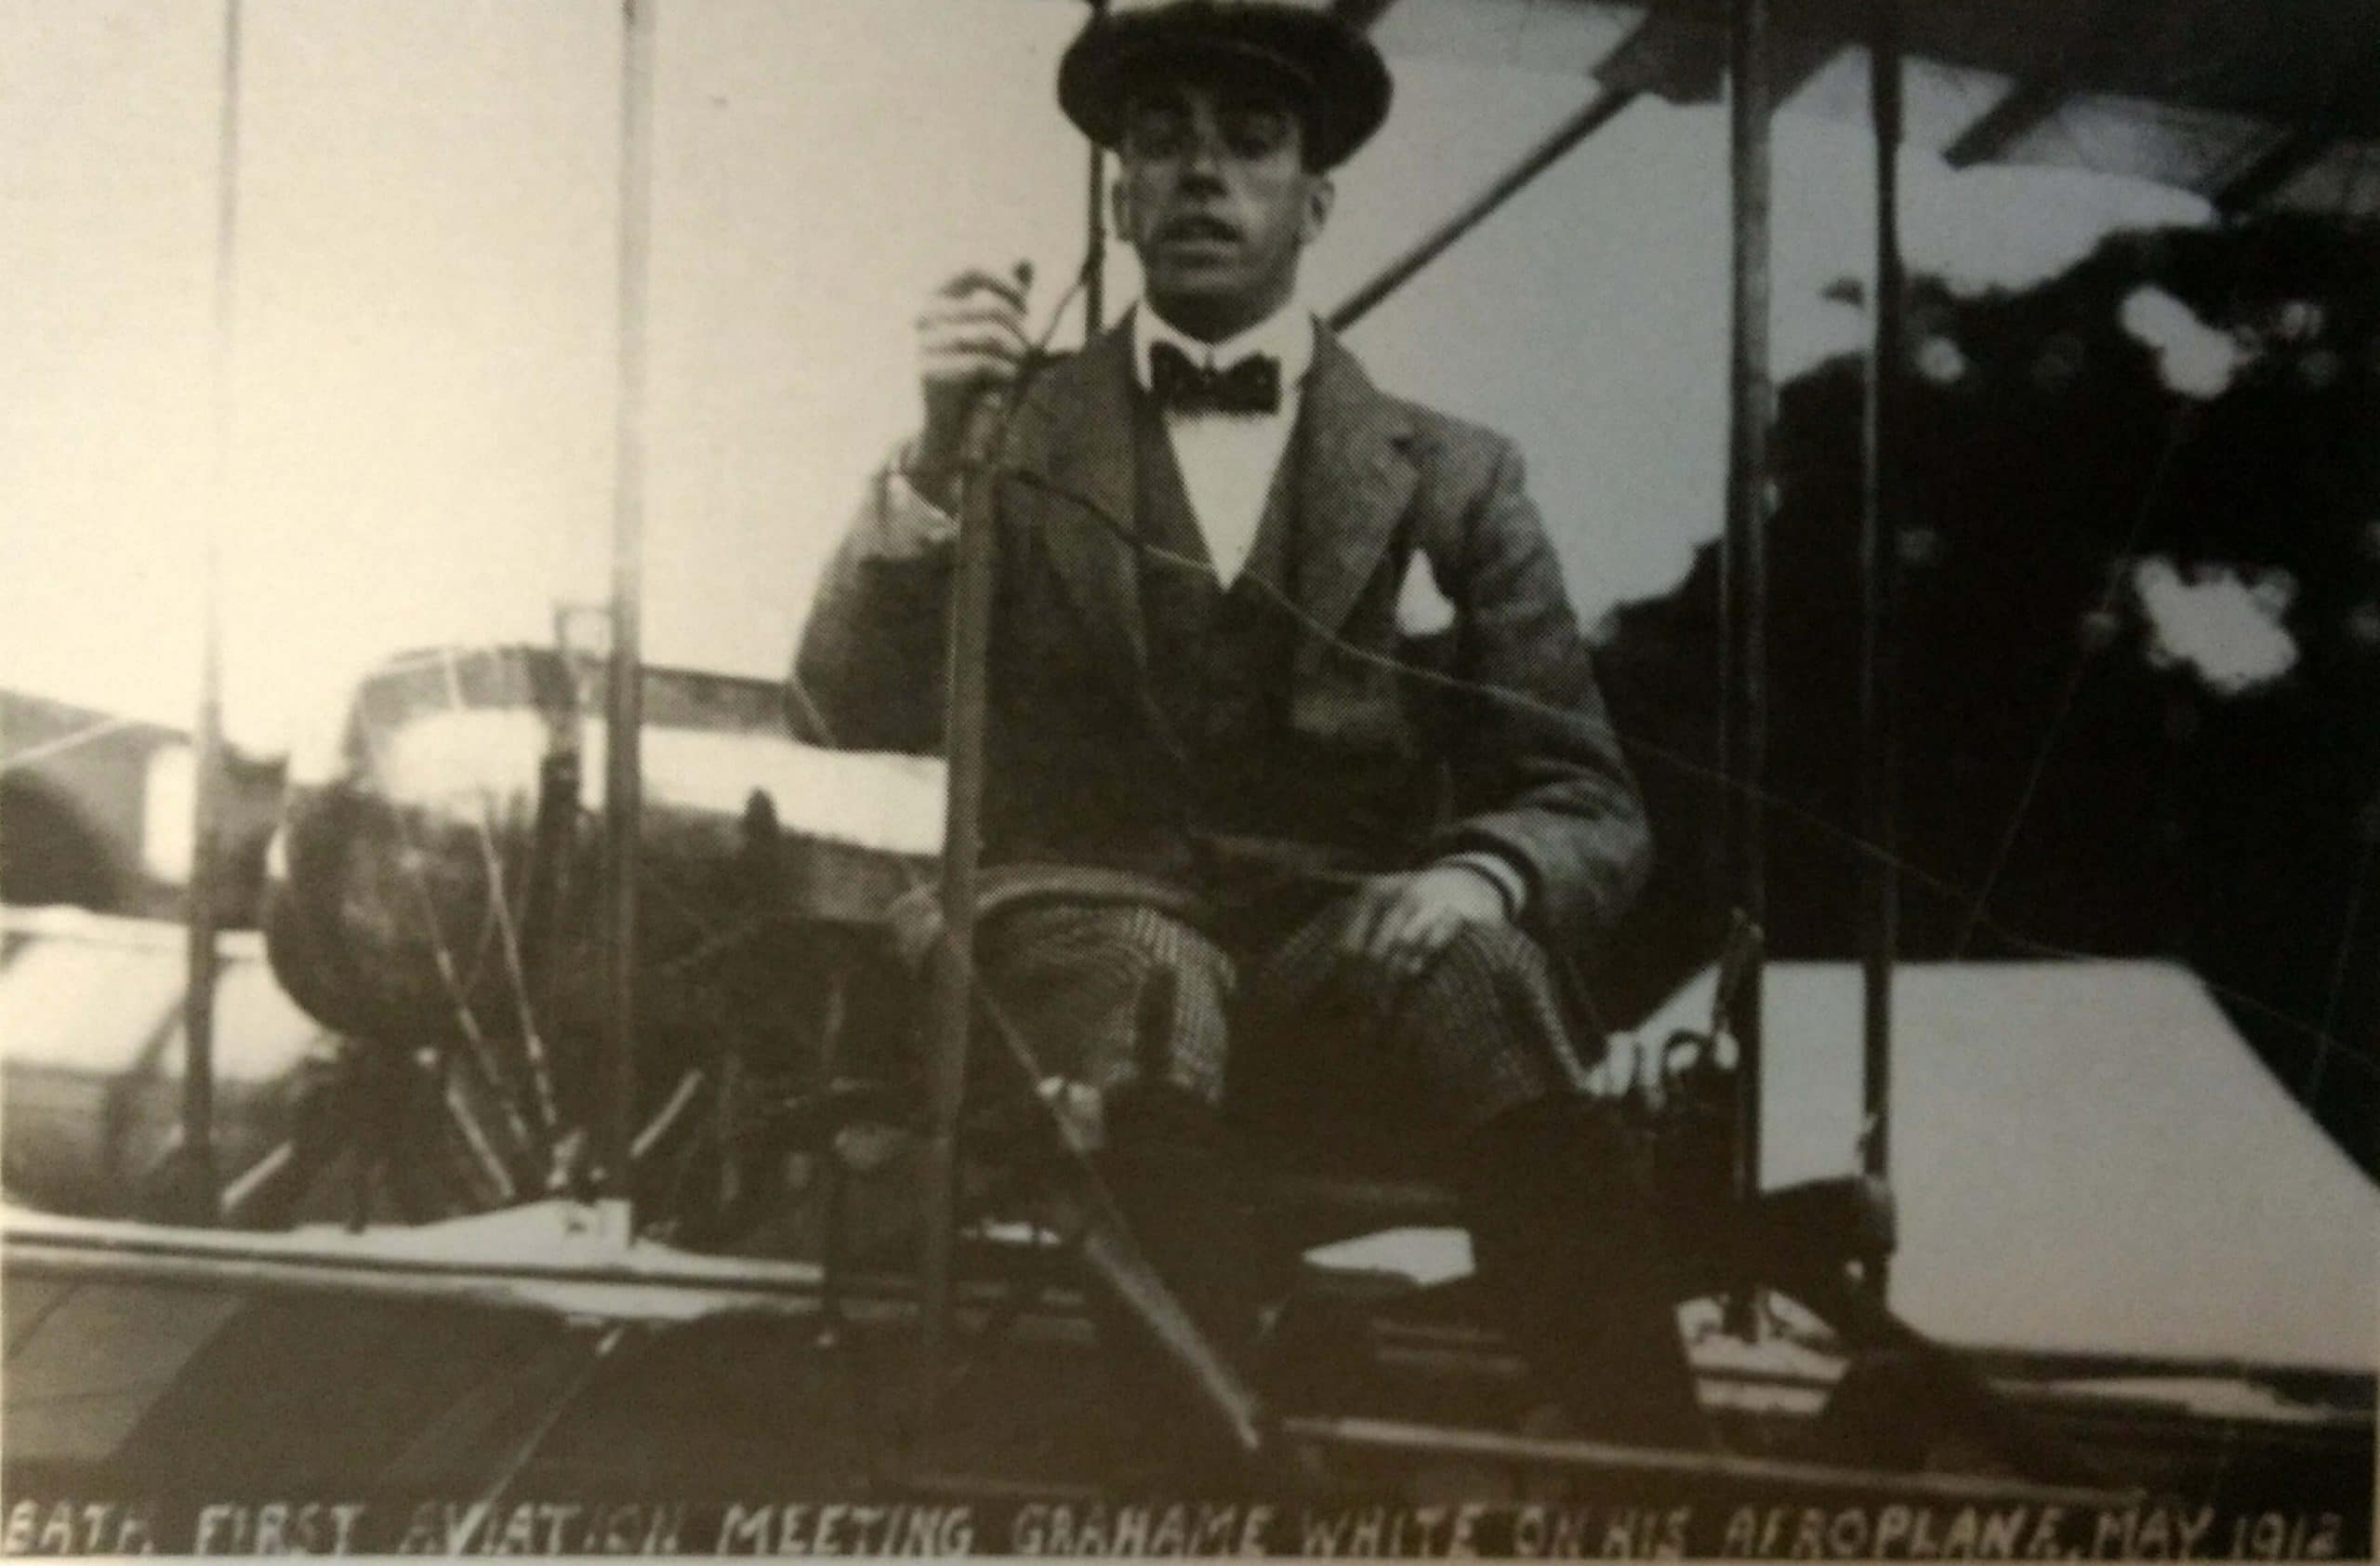 Claude Grahame-White at first Bath aviation meeting in 1912